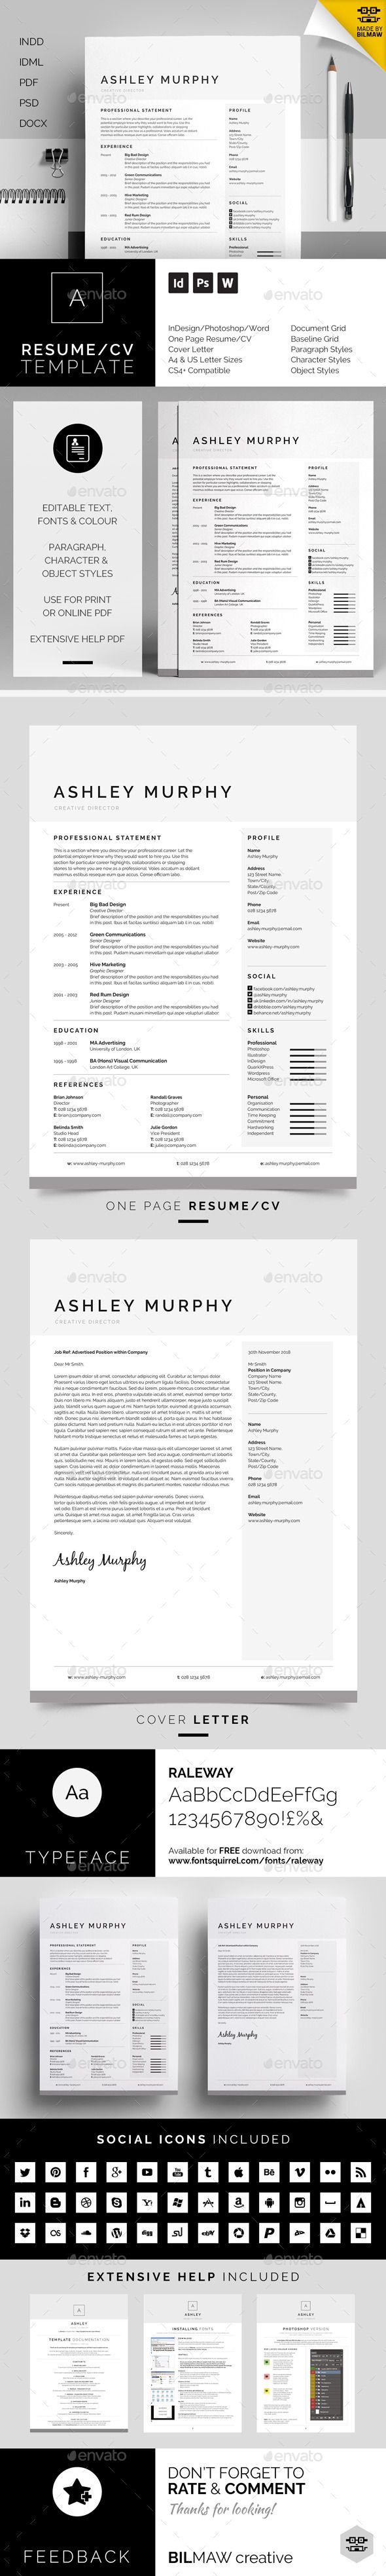 Cv Templates Pdf%0A Resume CV  Ashley